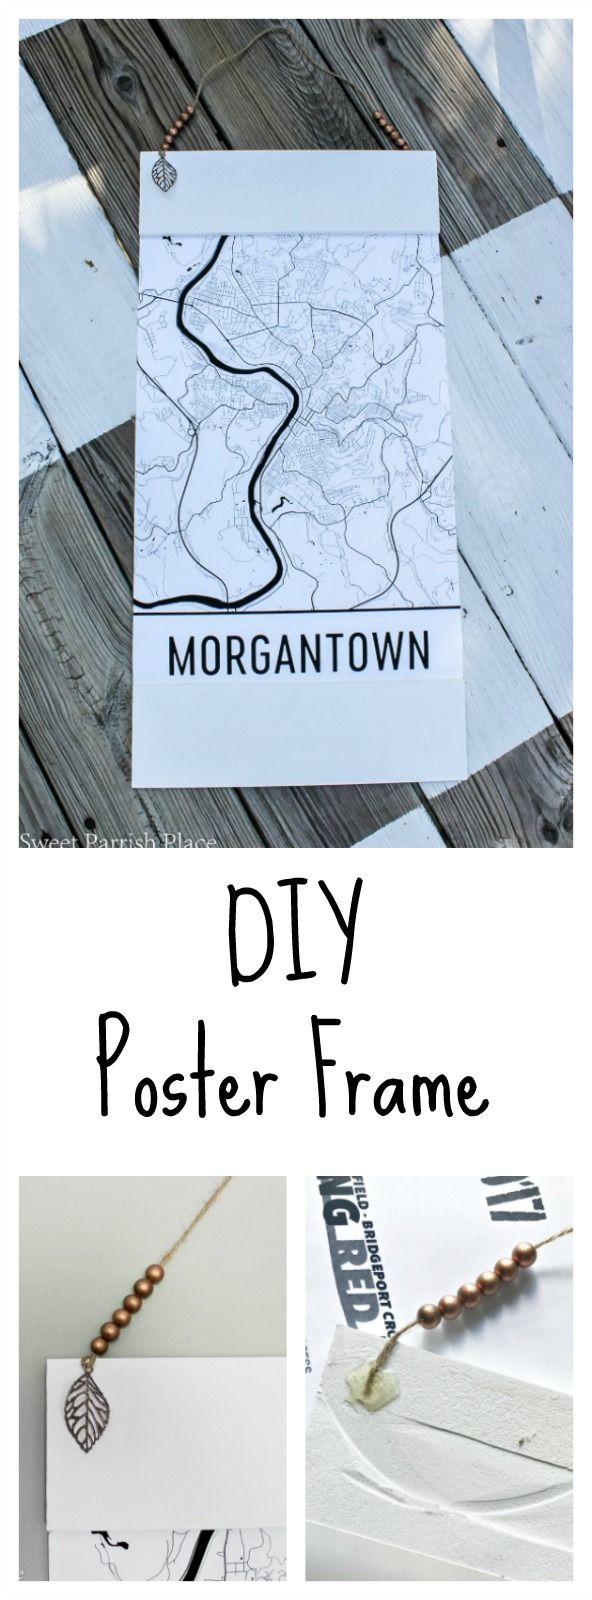 Poster design diy - Modern White Diy Poster Frame Sweet Parrish Place Great Idea For Hanging Art On